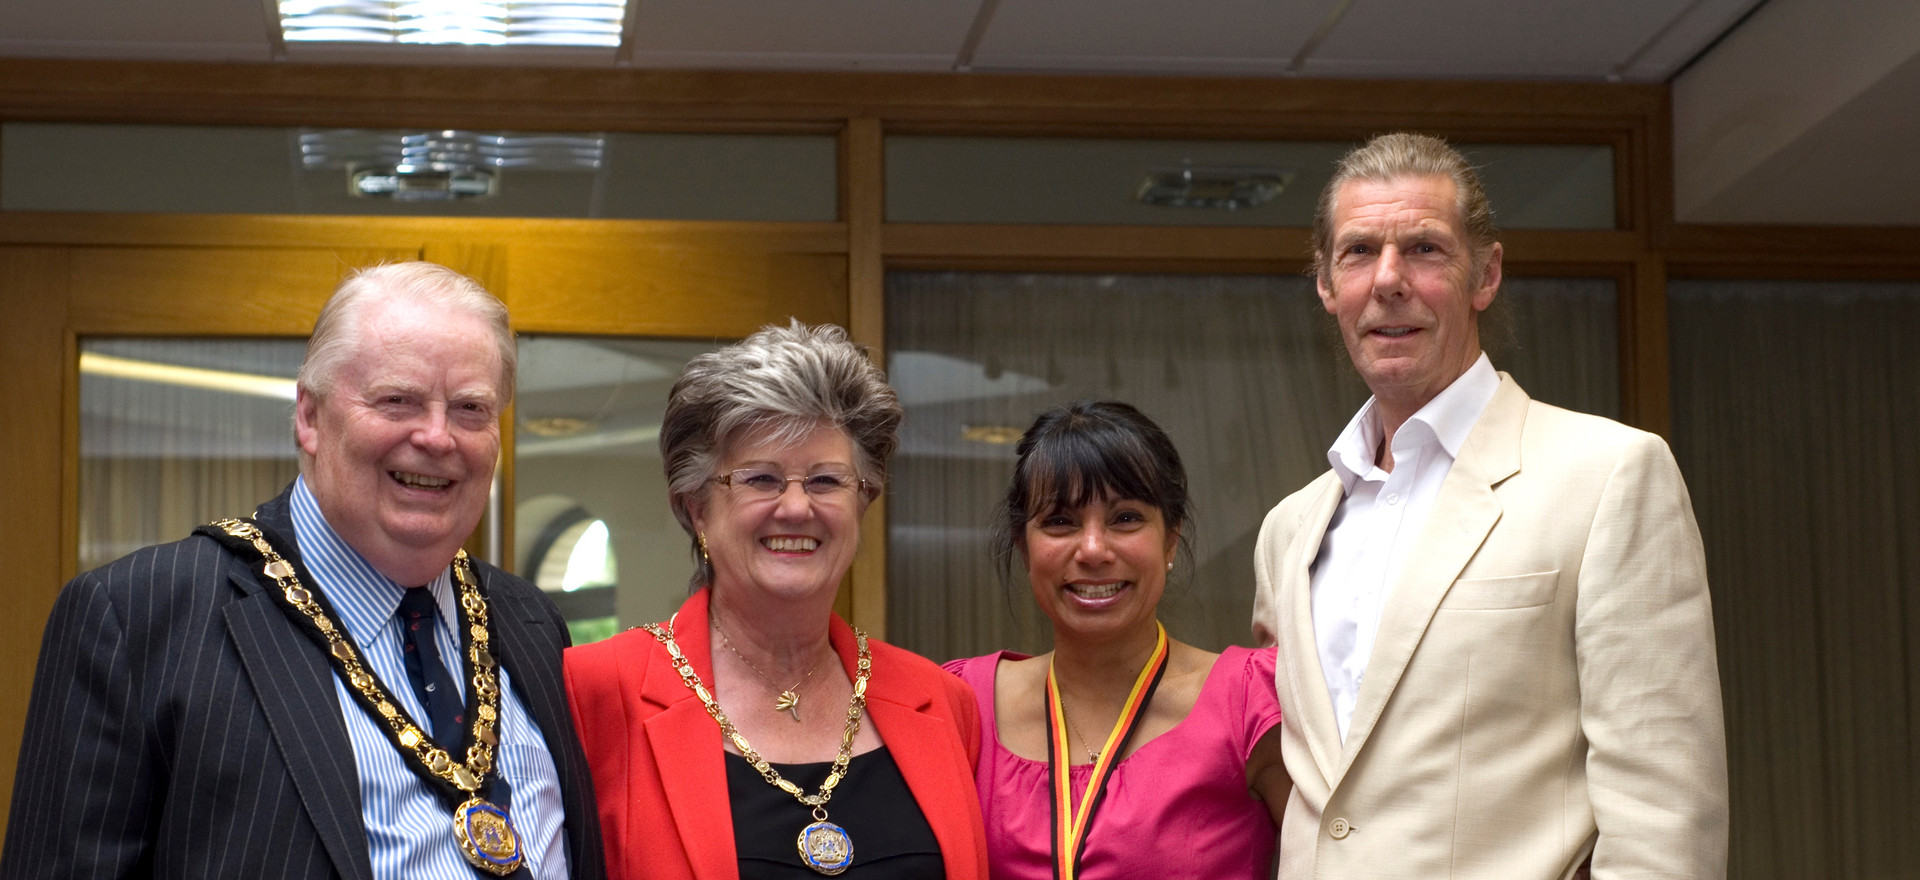 Mayor, Mayoress, Yas & Pete.jpg